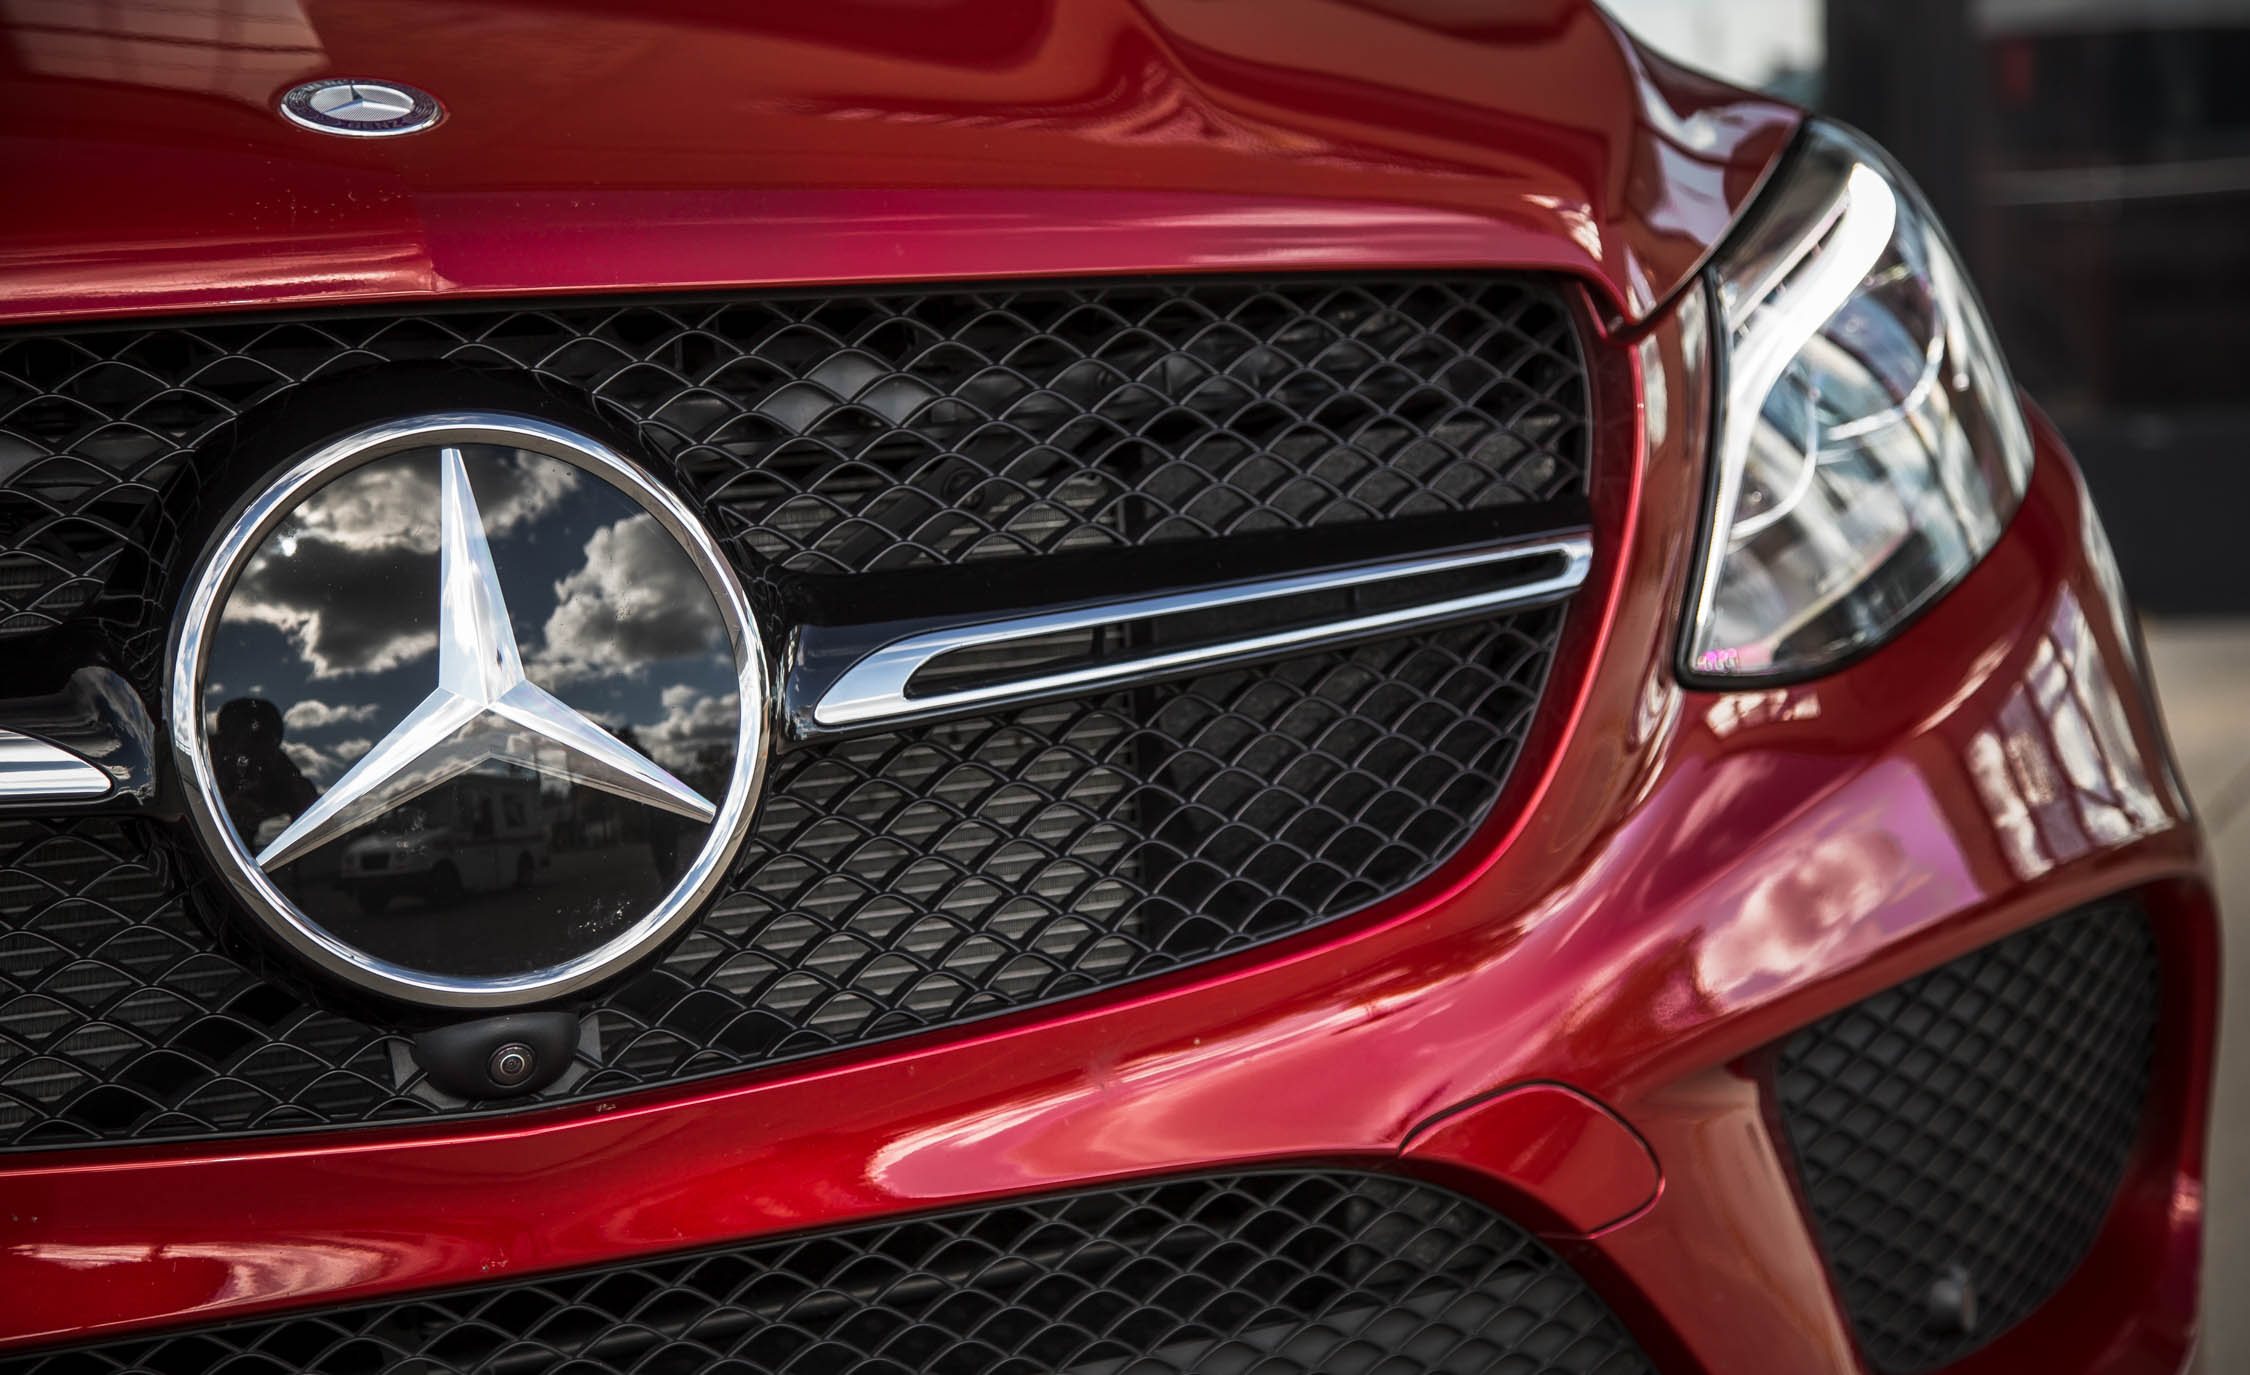 2016 Mercedes-Benz GLE450 AMG Coupe Exterior Grille Close-Up